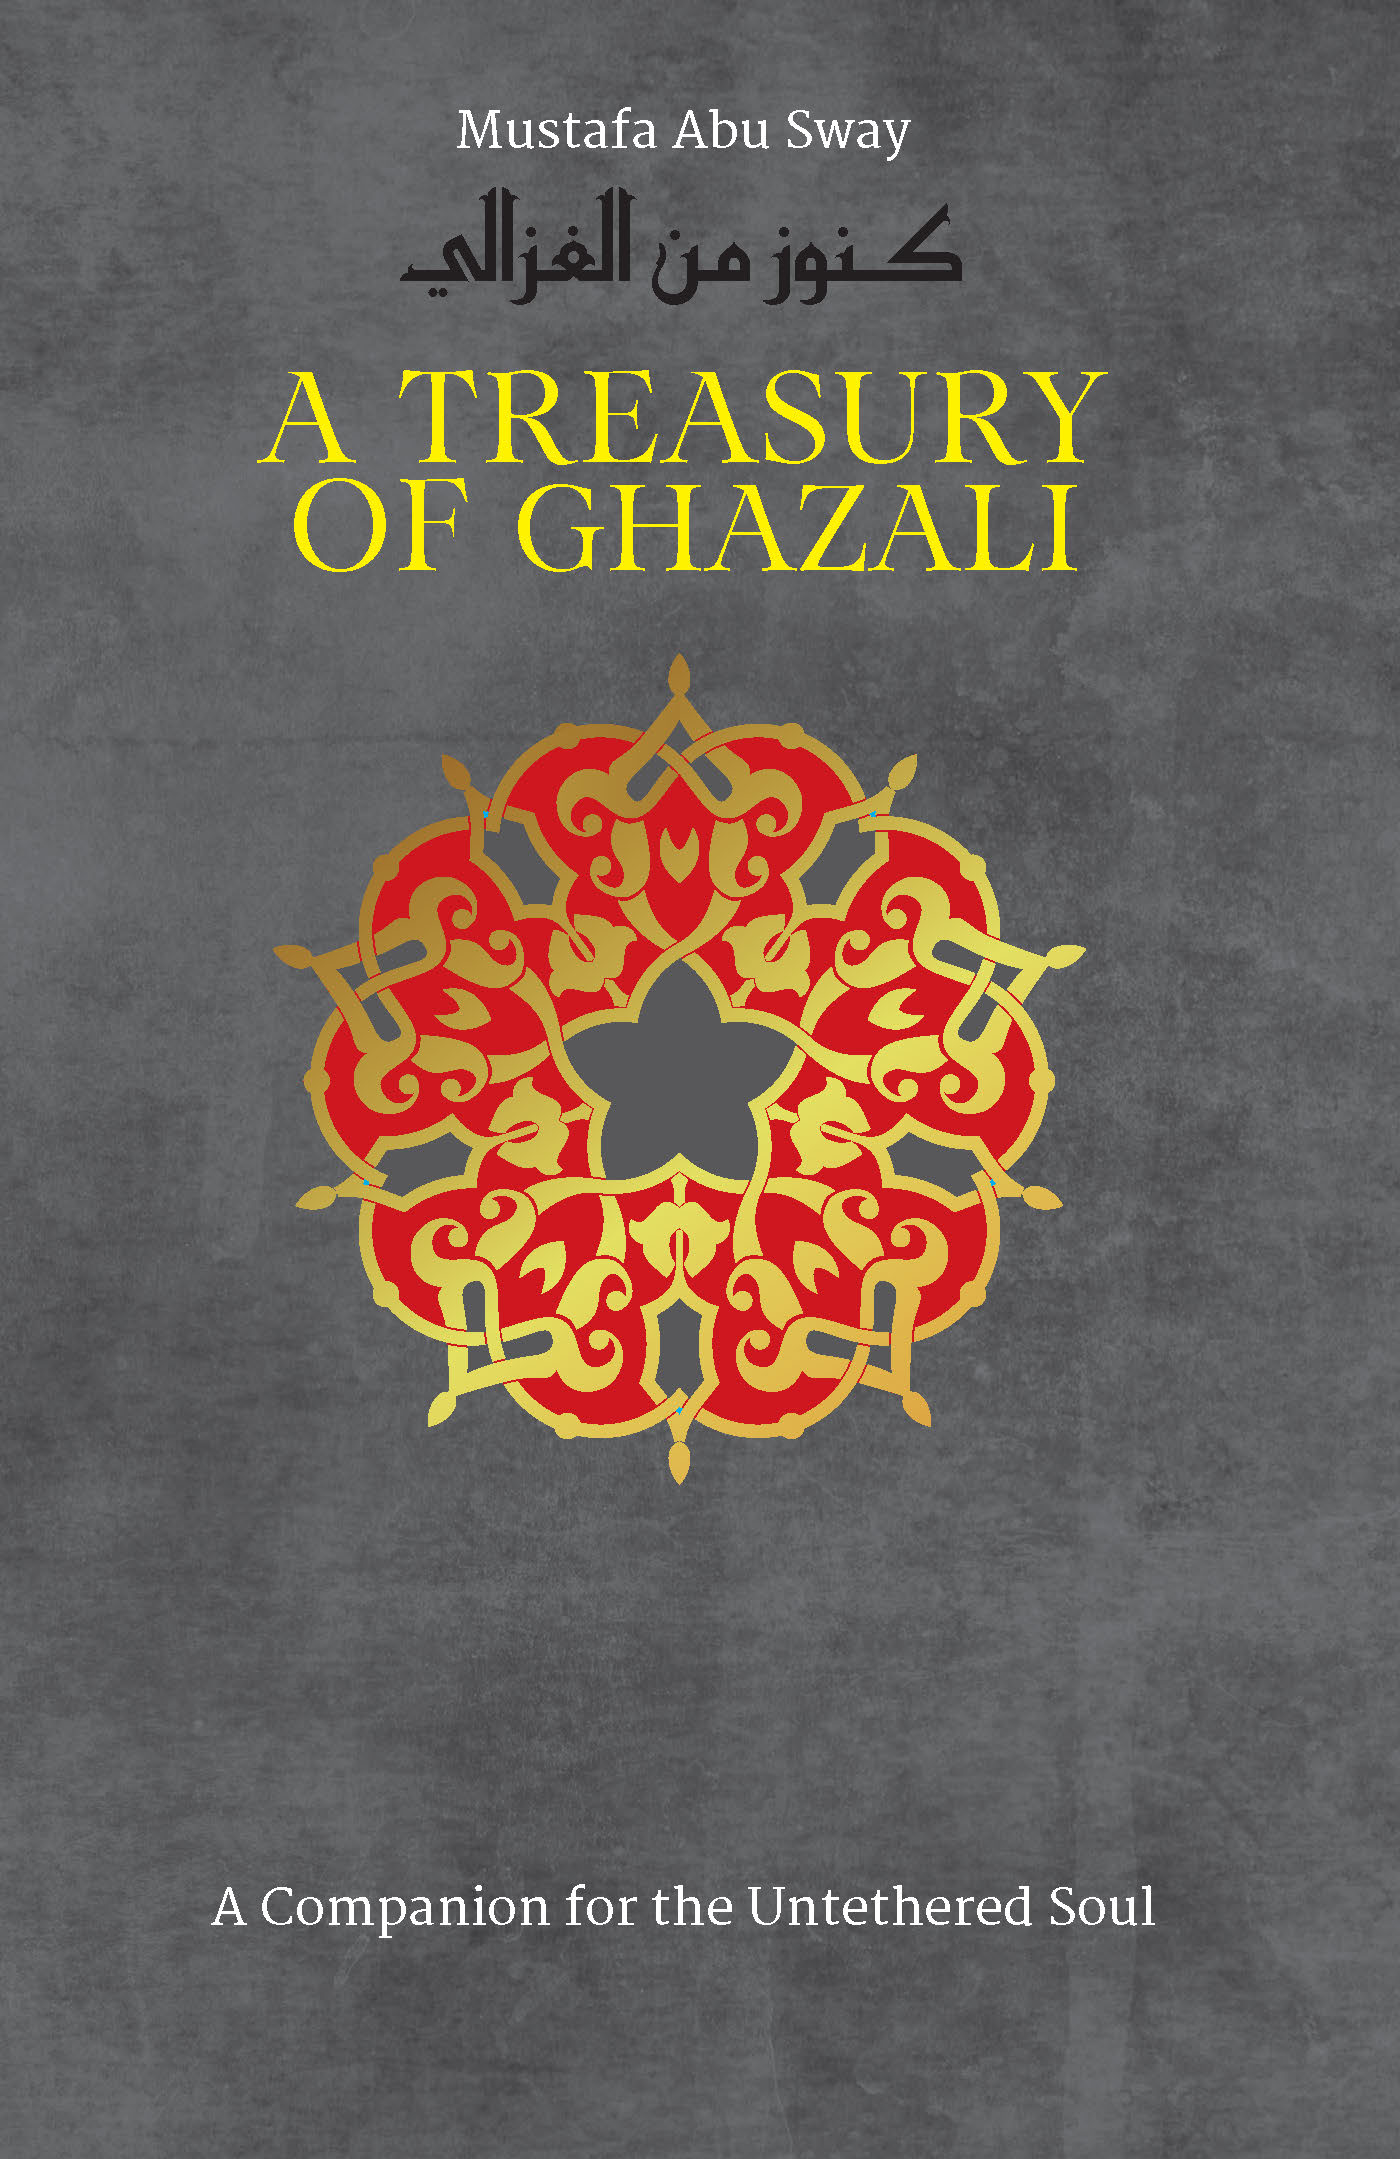 Book Review—A Treasury of Ghazali by Mustafa Abu Sway